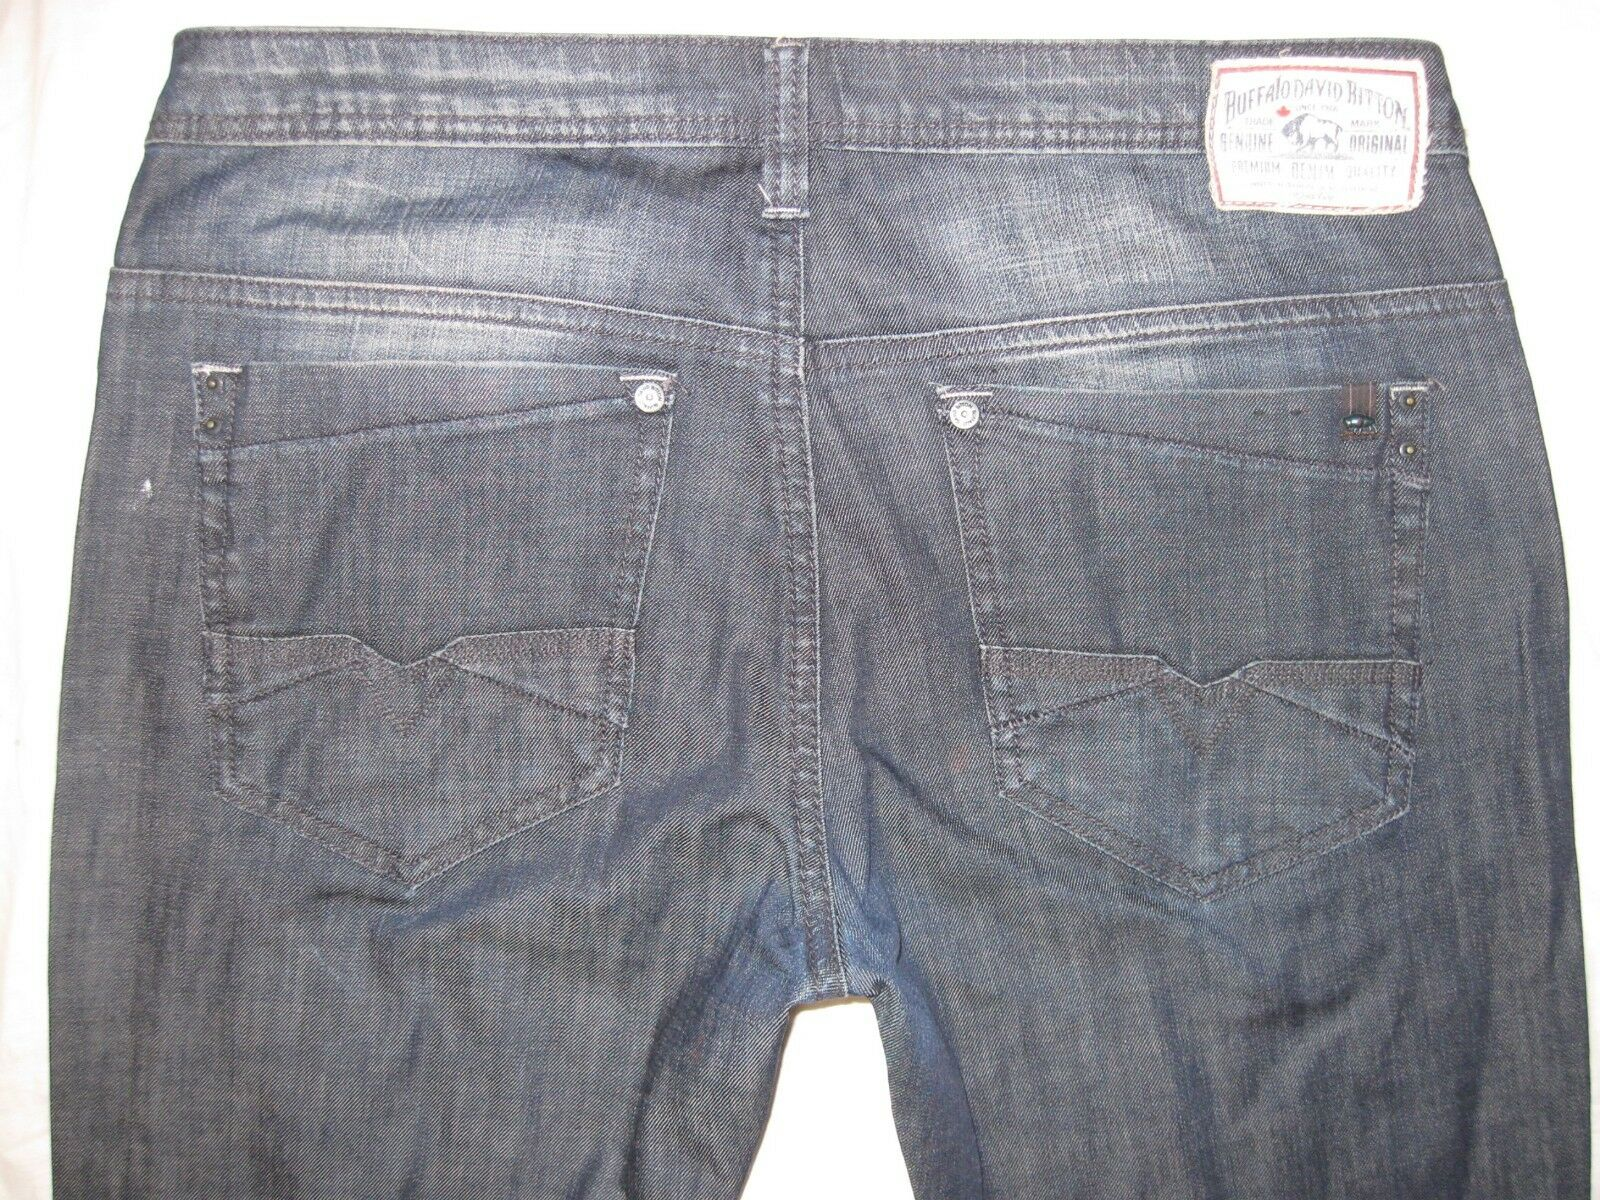 Buffalo by David Bitton Lucas X Taggd 36 36 Actually 38 1 4 X 35 1 4 Men's Jeans